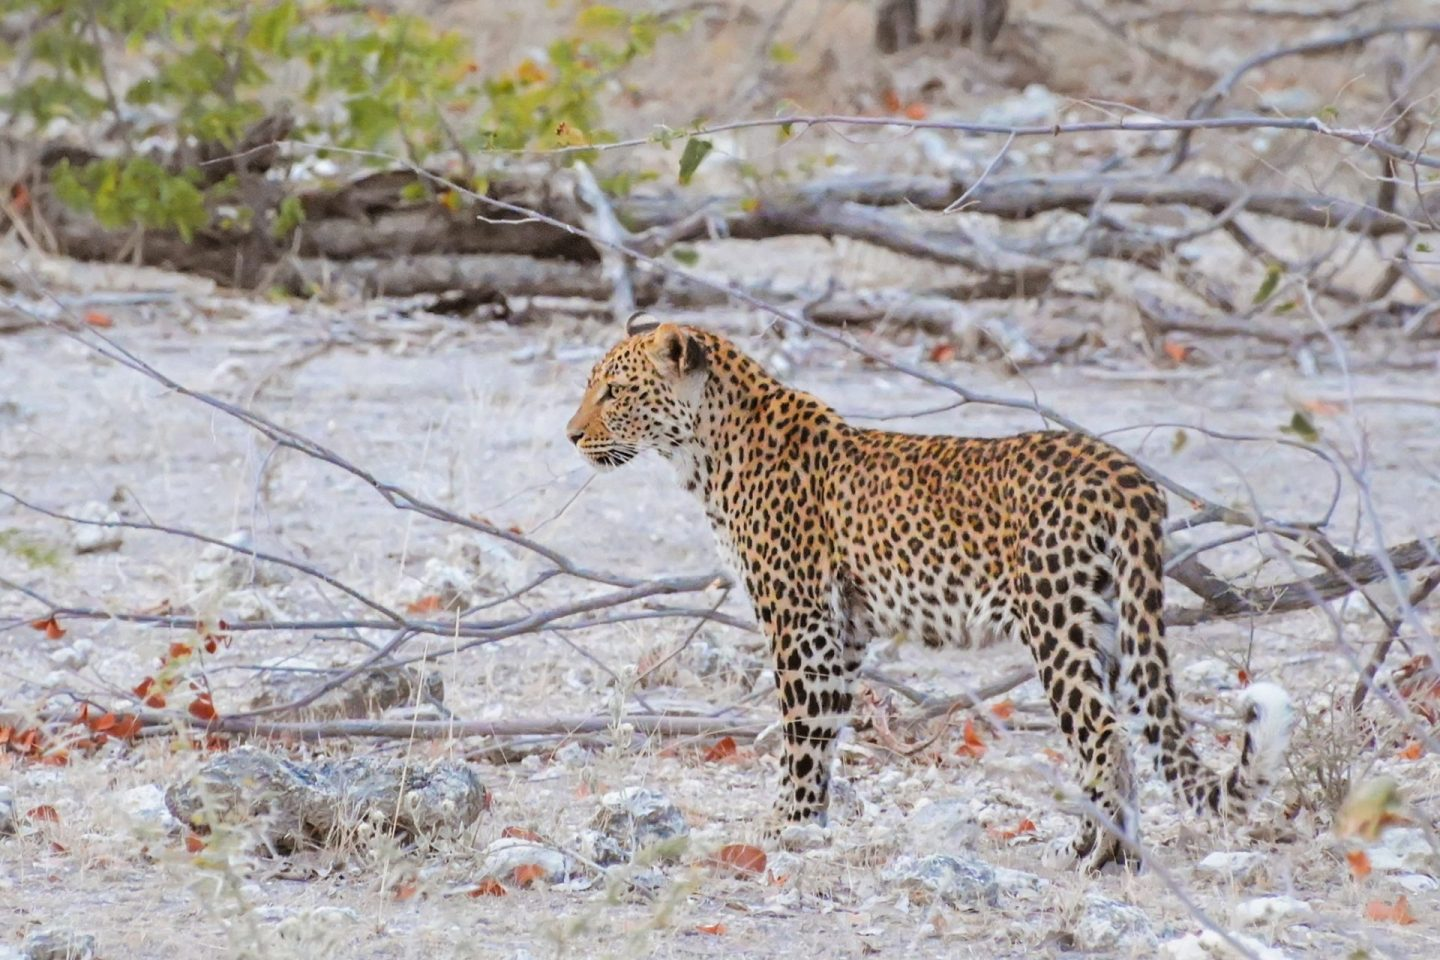 Leopard on Namibia self drive safari in Etosha National Park